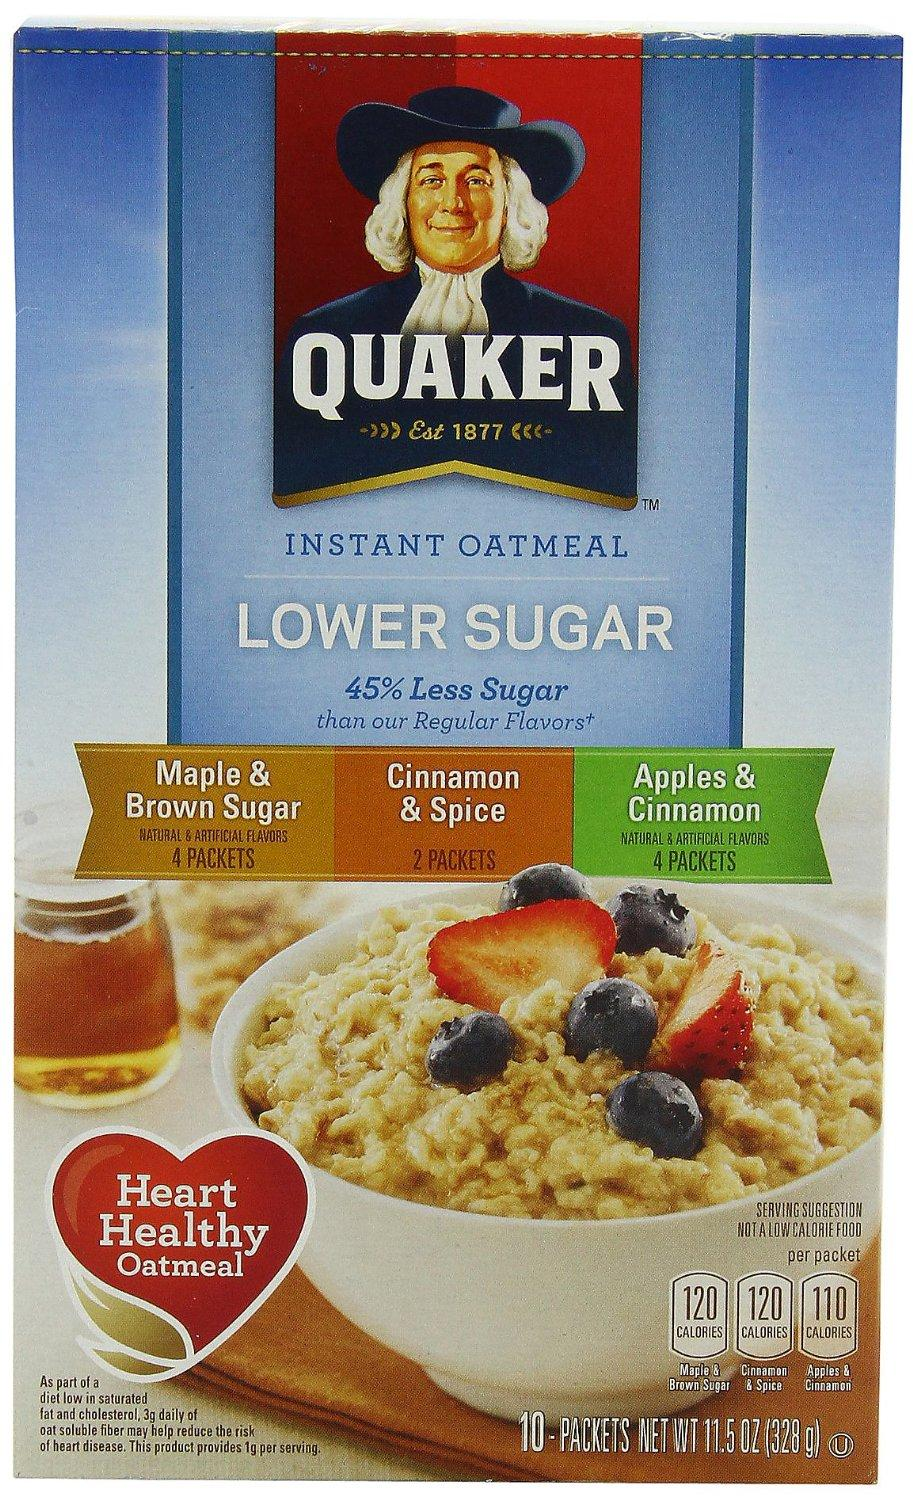 $8.06 Quaker Instant Oatmeal Lower Sugar, Flavor Variety Pack, 10 Count Boxes, 11.5 Ounce, (Pack of 4)